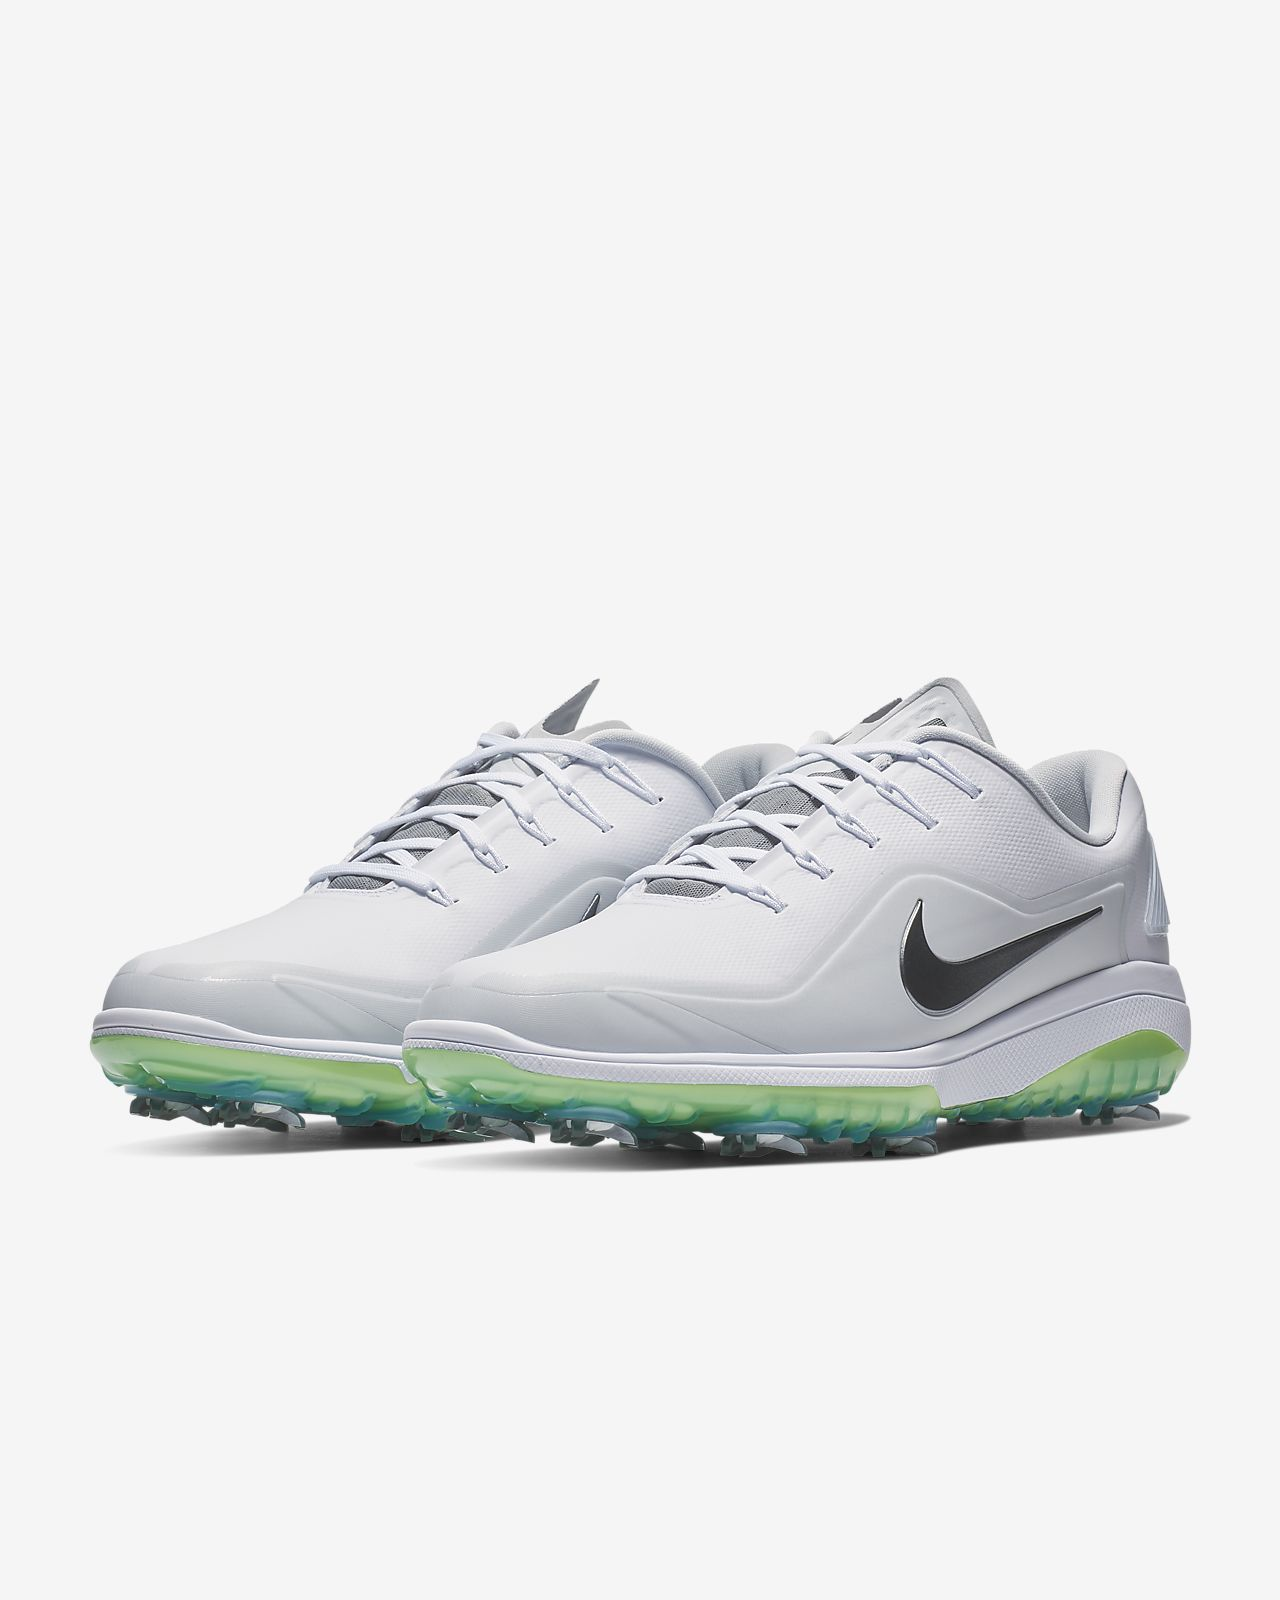 d89022e799f166 Nike React Vapor 2 Men s Golf Shoe. Nike.com